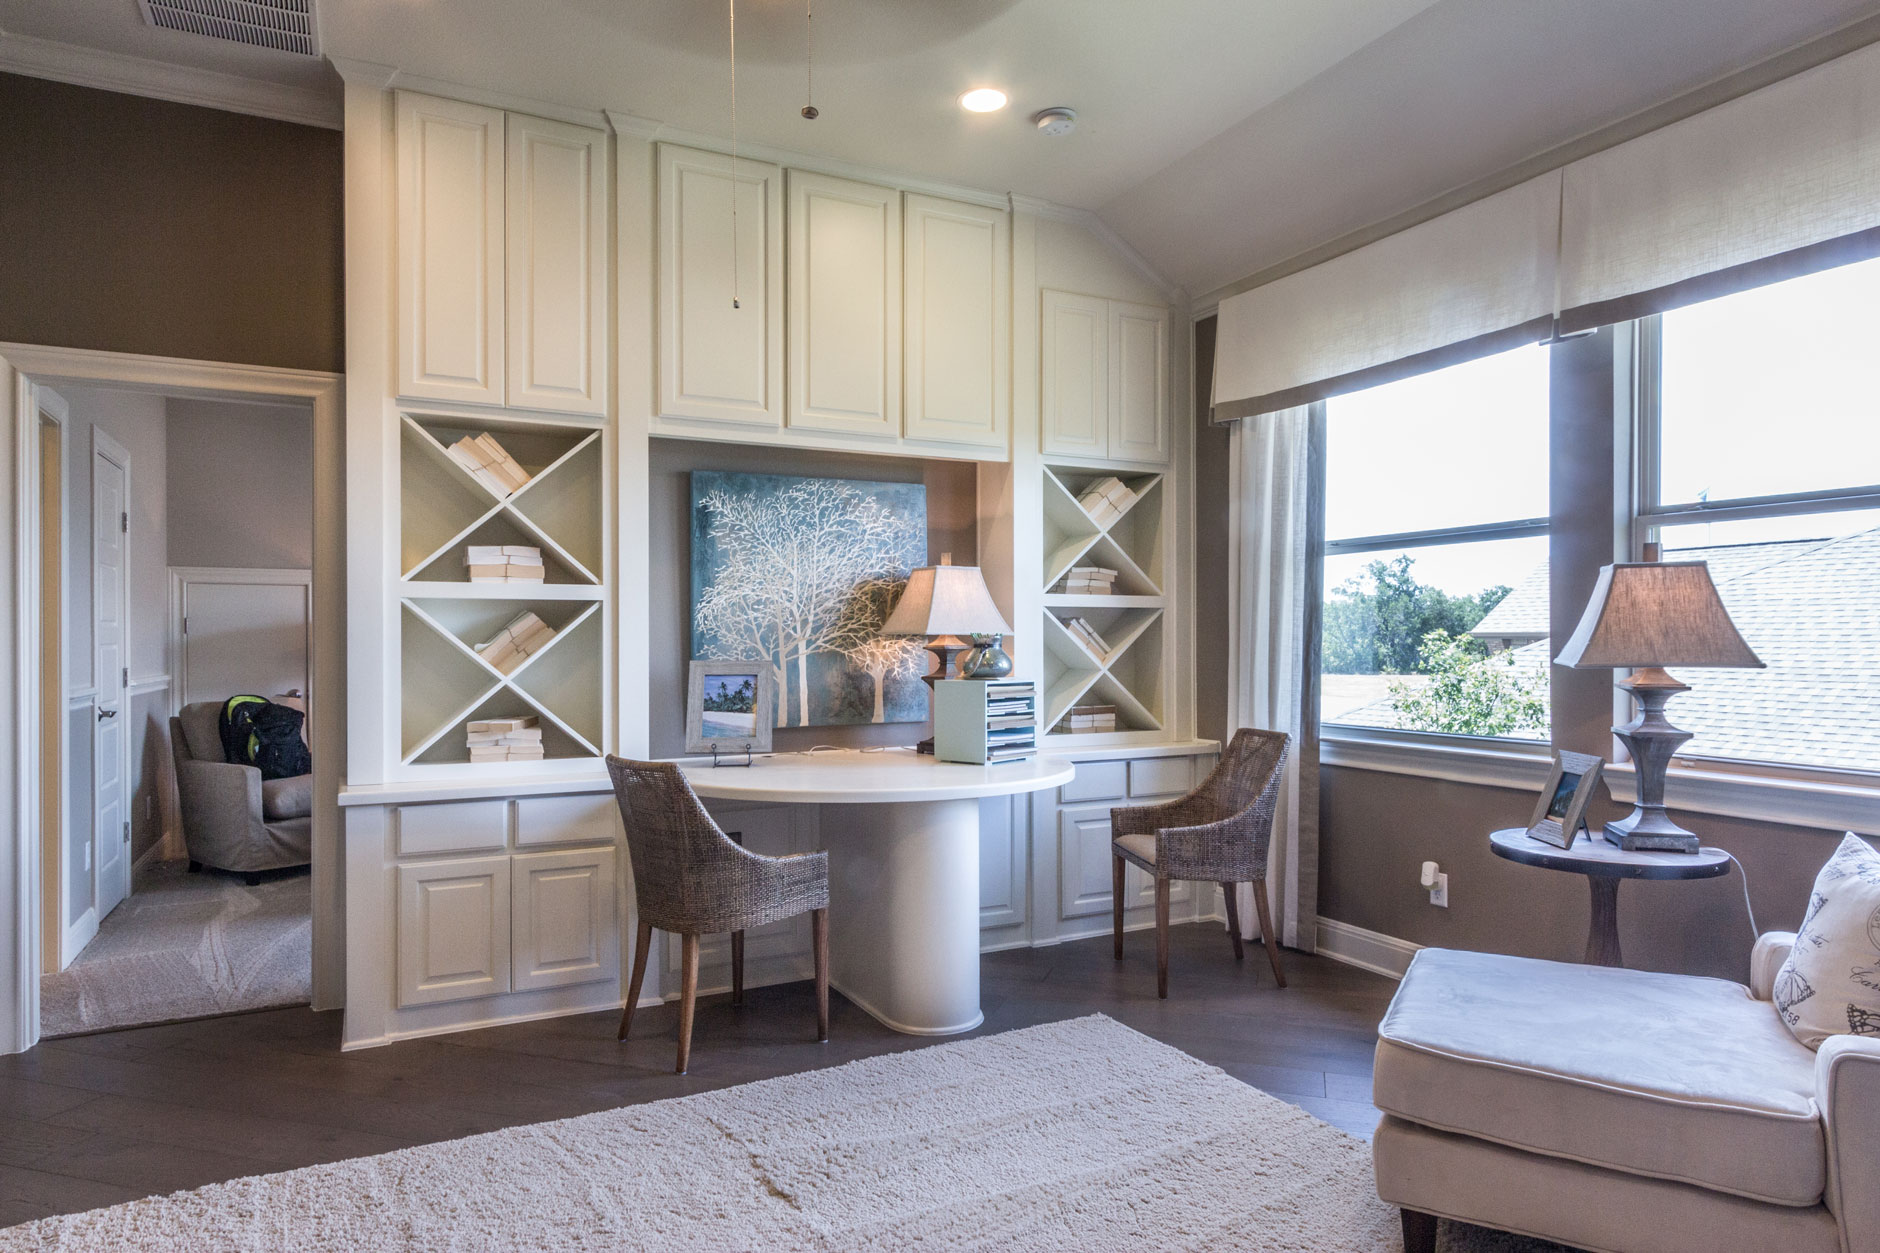 Desk with x bookshelves and TaylorCraft raised panel paint-grade cabinet doors in white